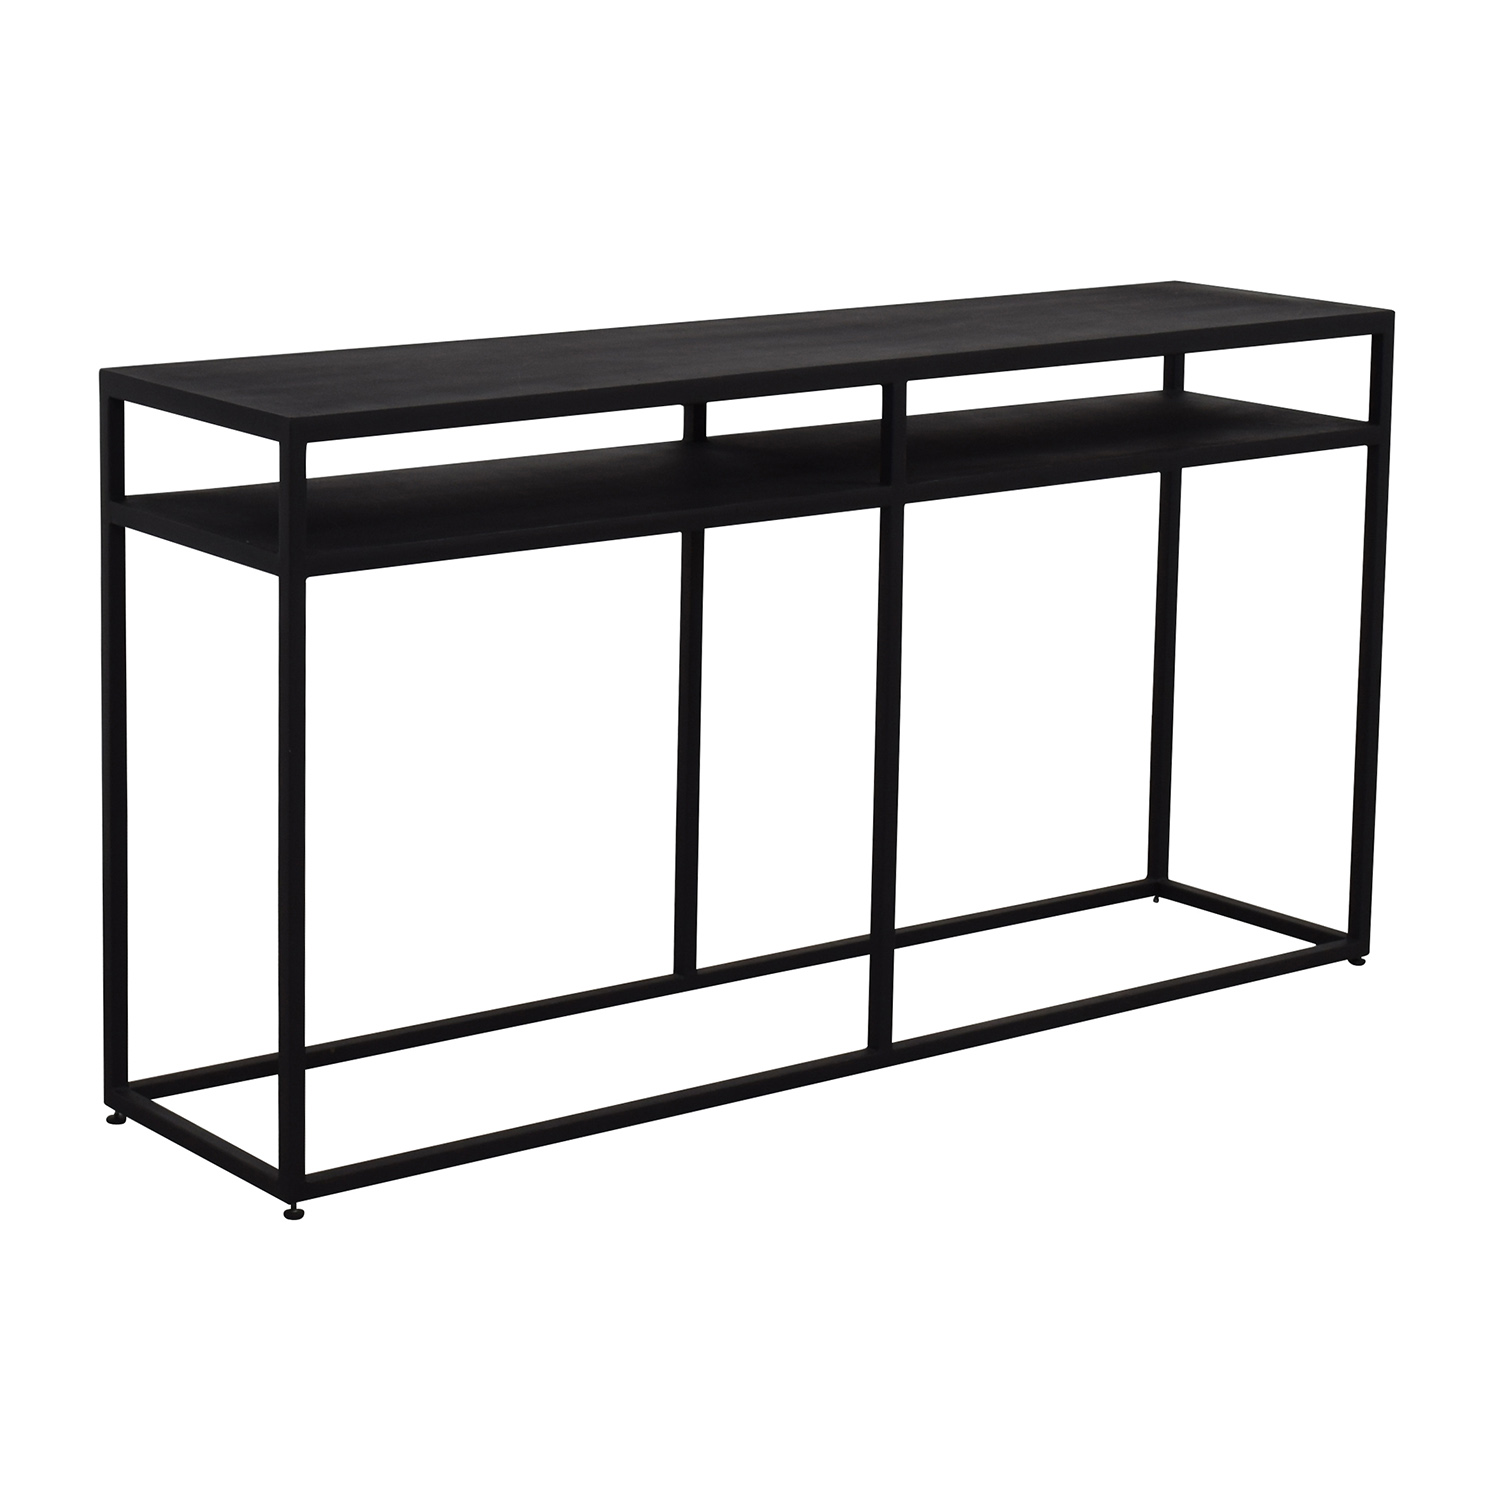 Pottery Barn Pottery Barn Tanner Iron TV Console for sale